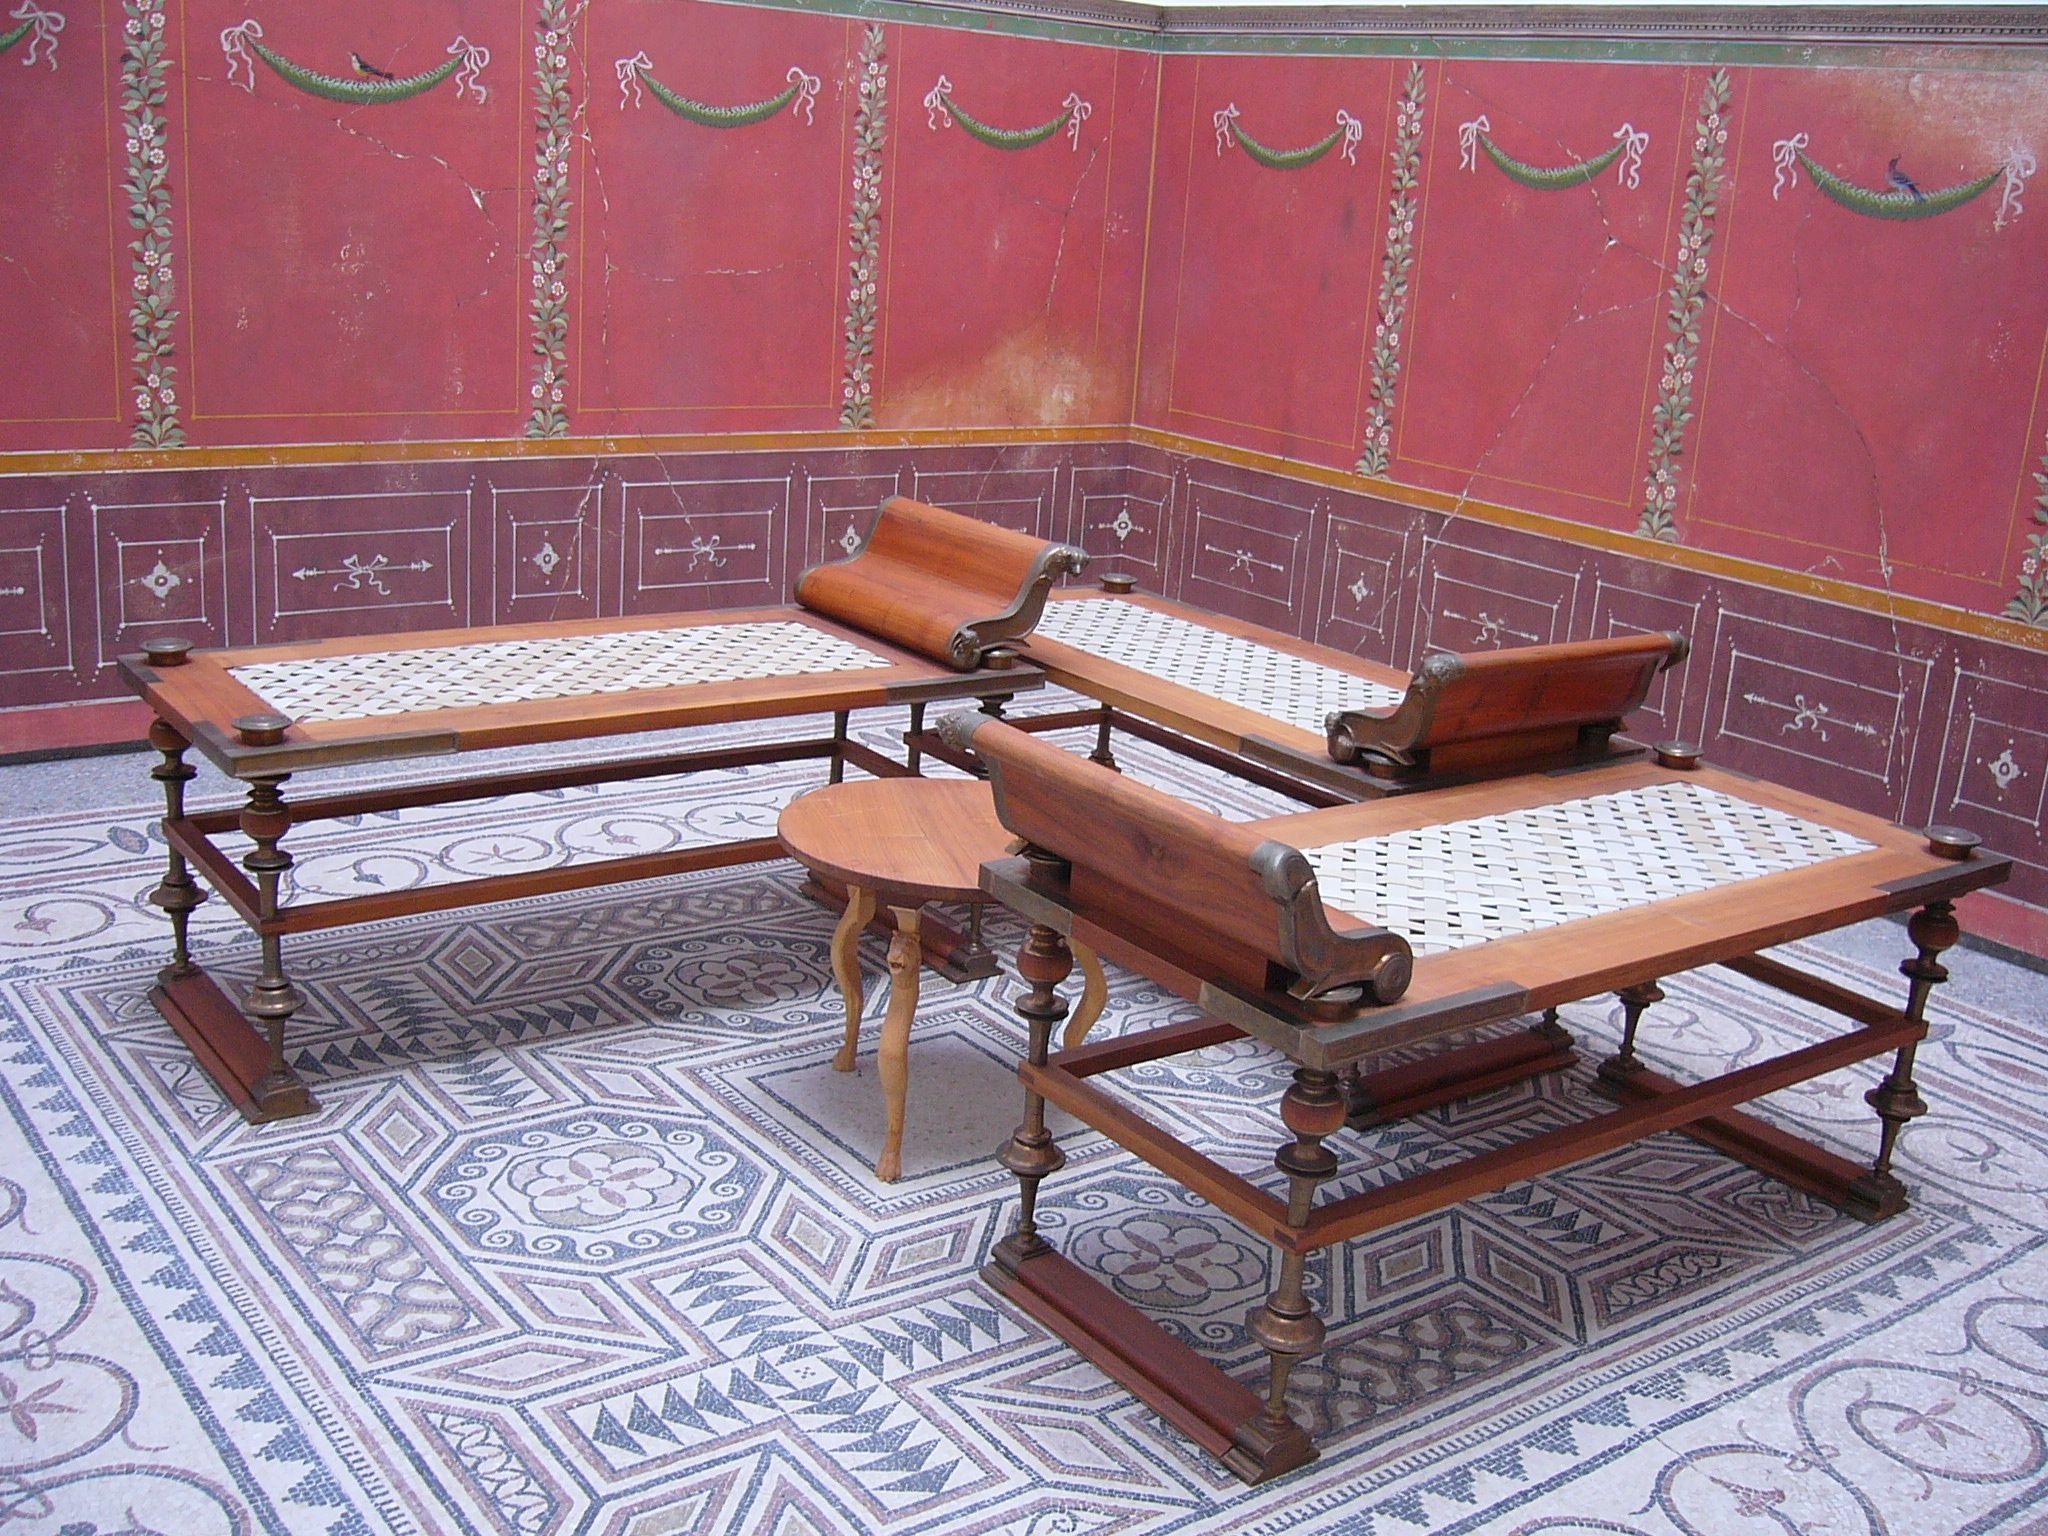 Furniture rome ancient roman furniture chairs it is a chair with - Find This Pin And More On Roman Furniture By Danaaaaaaa